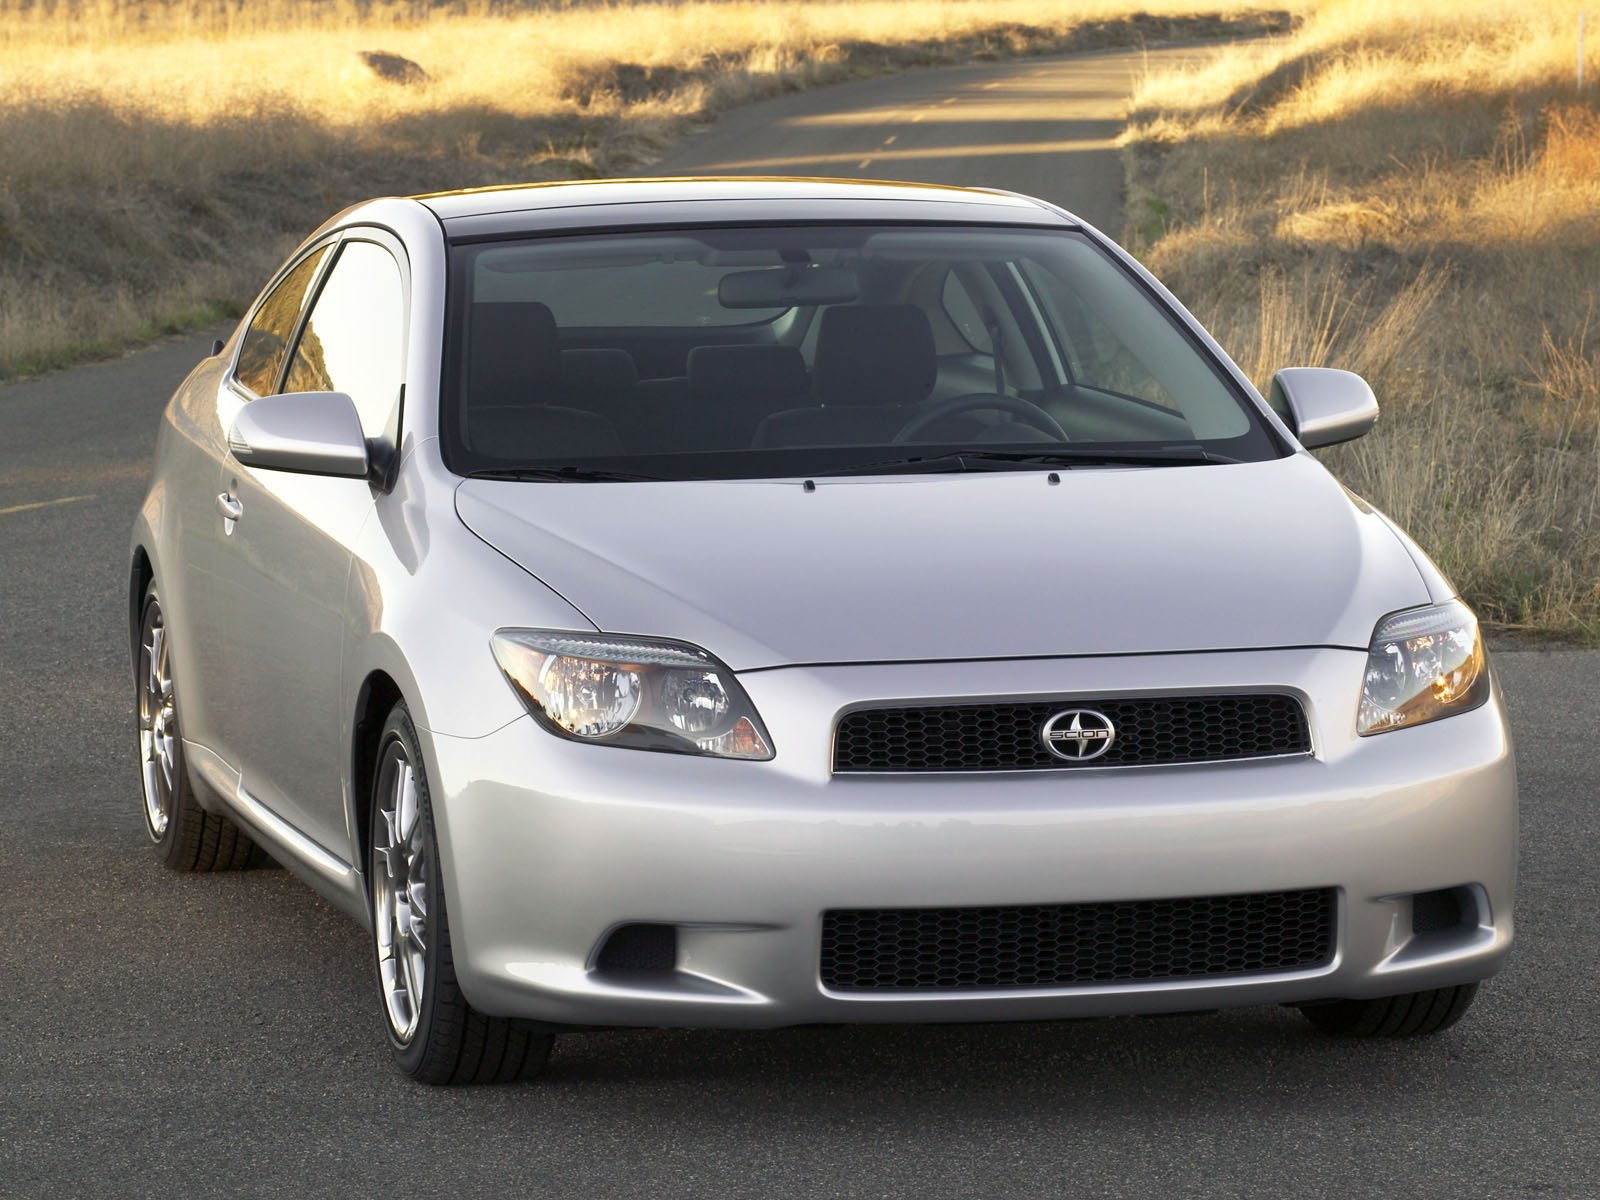 Scion tC photo 8138